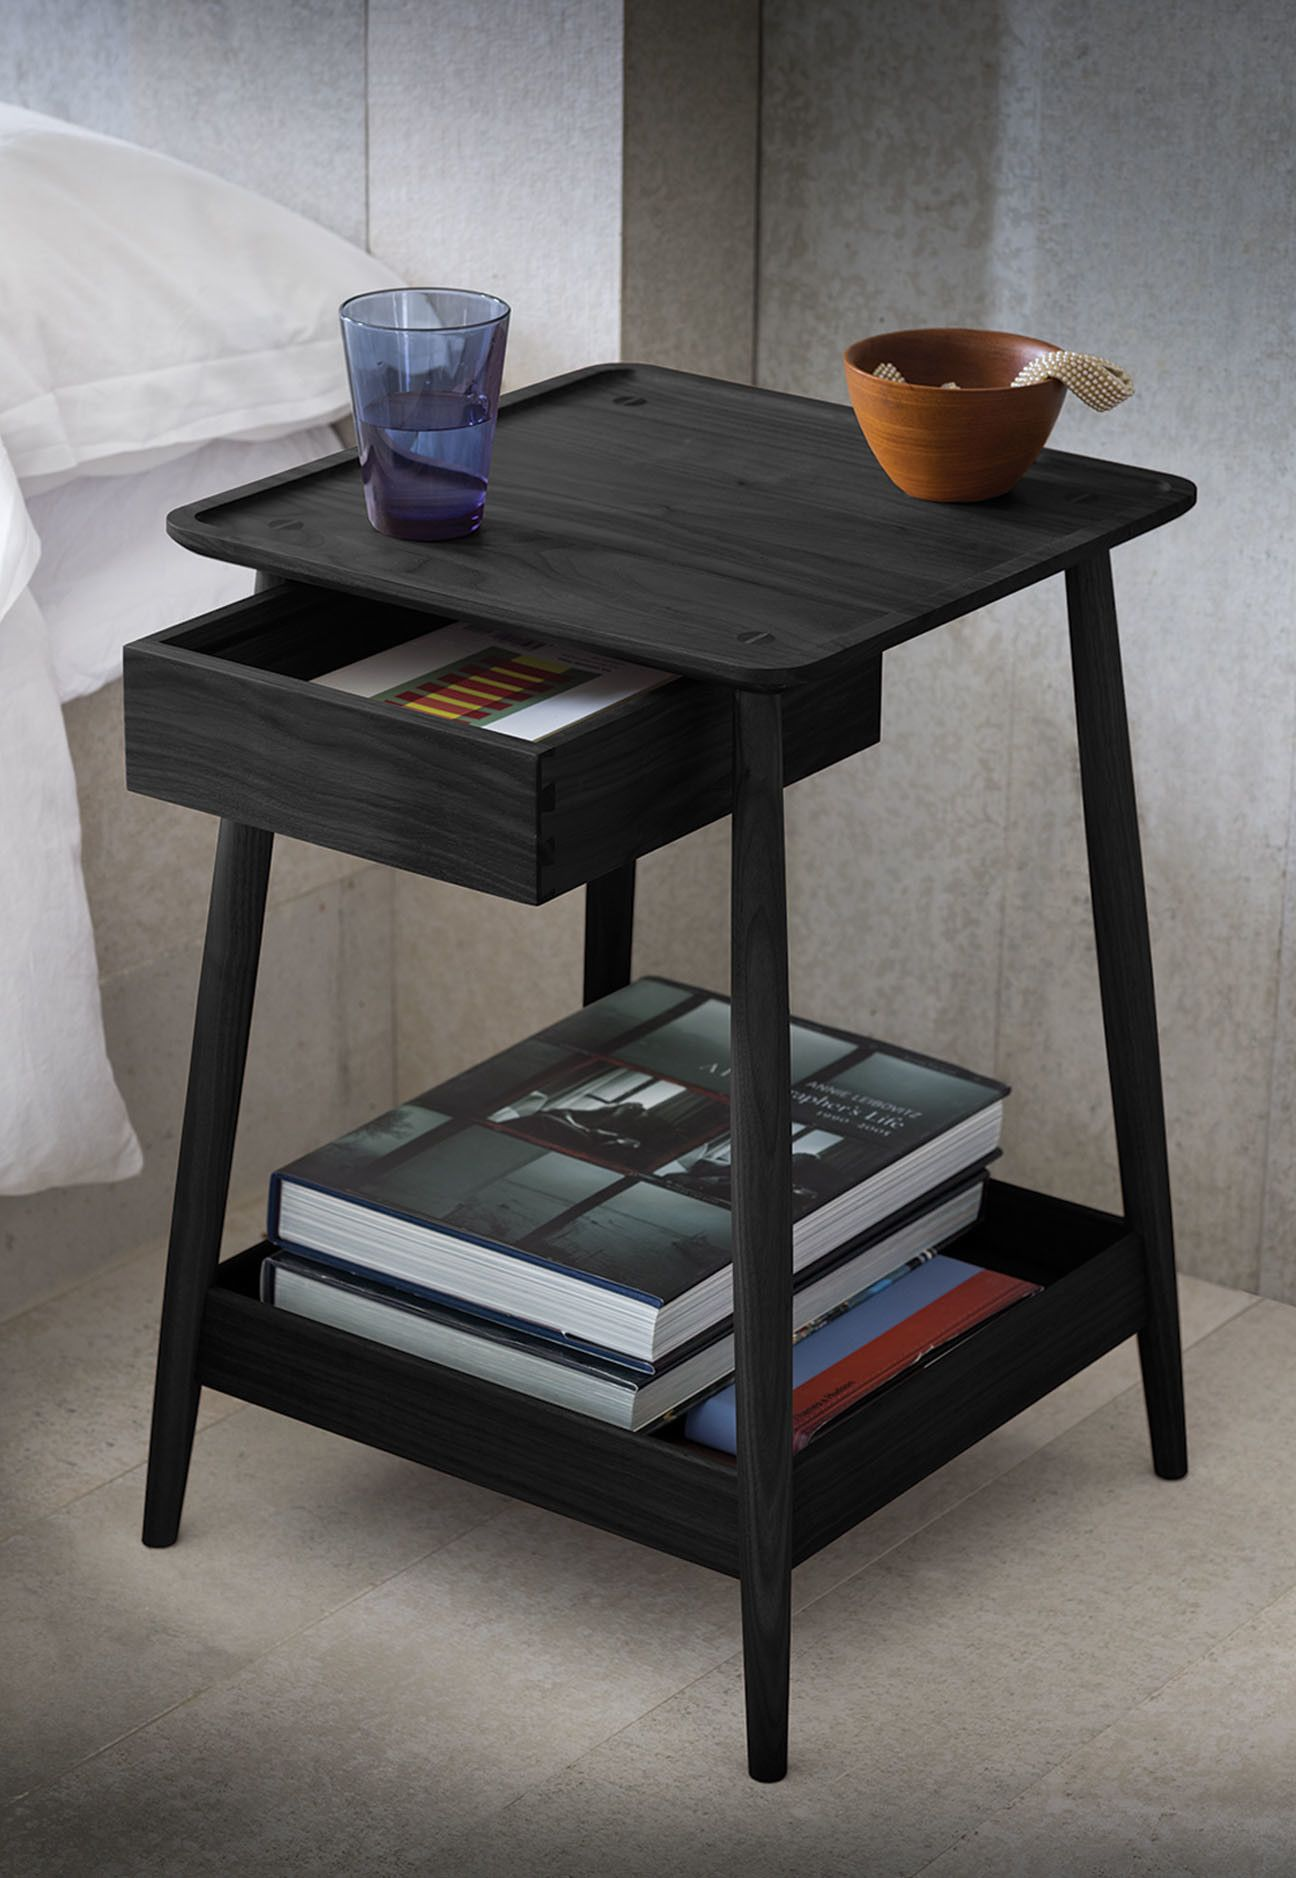 A Contemporary Bedside Table In Black Stained Ash With A Dovetailed Drawer Turned Legs And A Lipped Bottom Tray Furniture Black Bedside Table Coffee Table